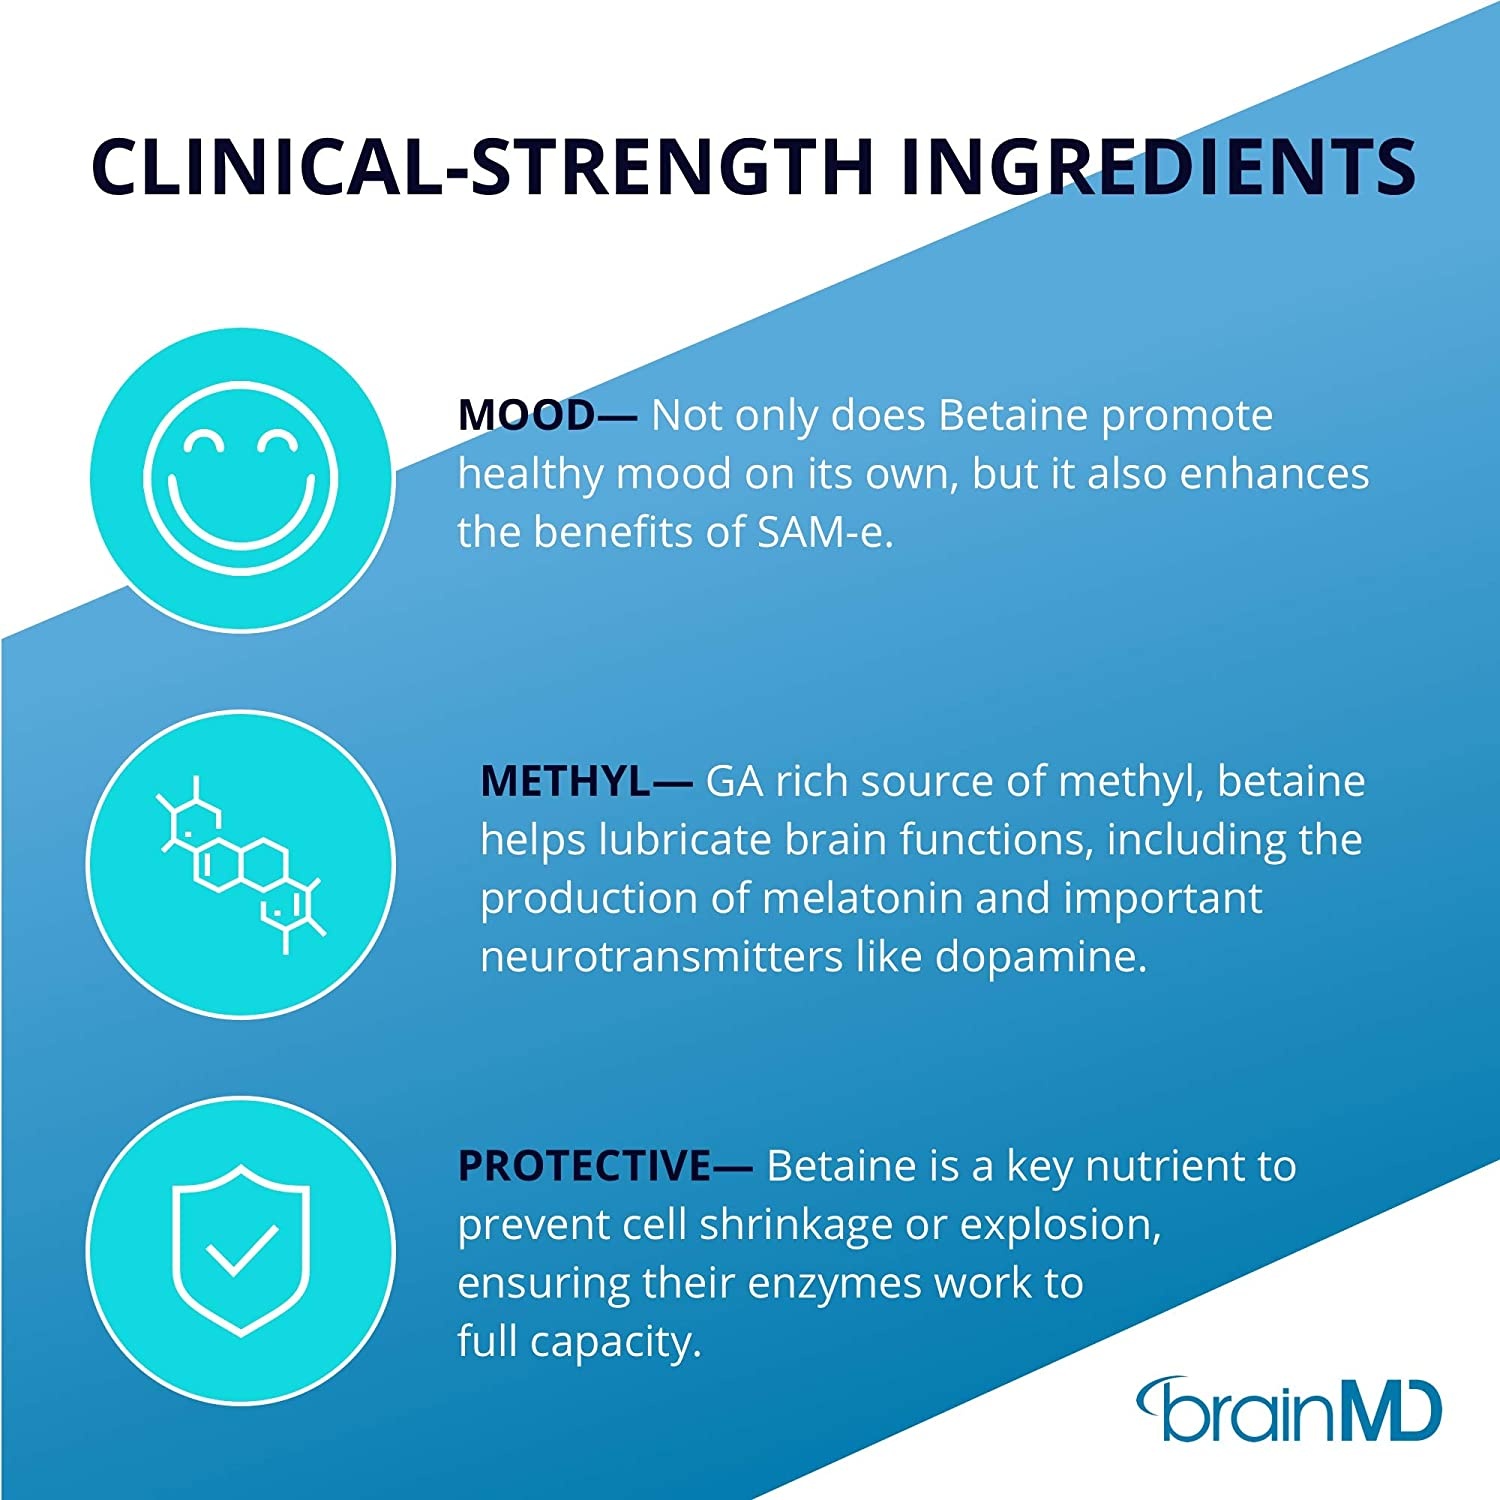 Amazon.com: Dr. Amen brainMD Betaine TMG - 1000 mg Trimethylglycine, 60 Capsules - Healthy Mood Support Supplement, Promotes Metabolism & Liver Health, ...